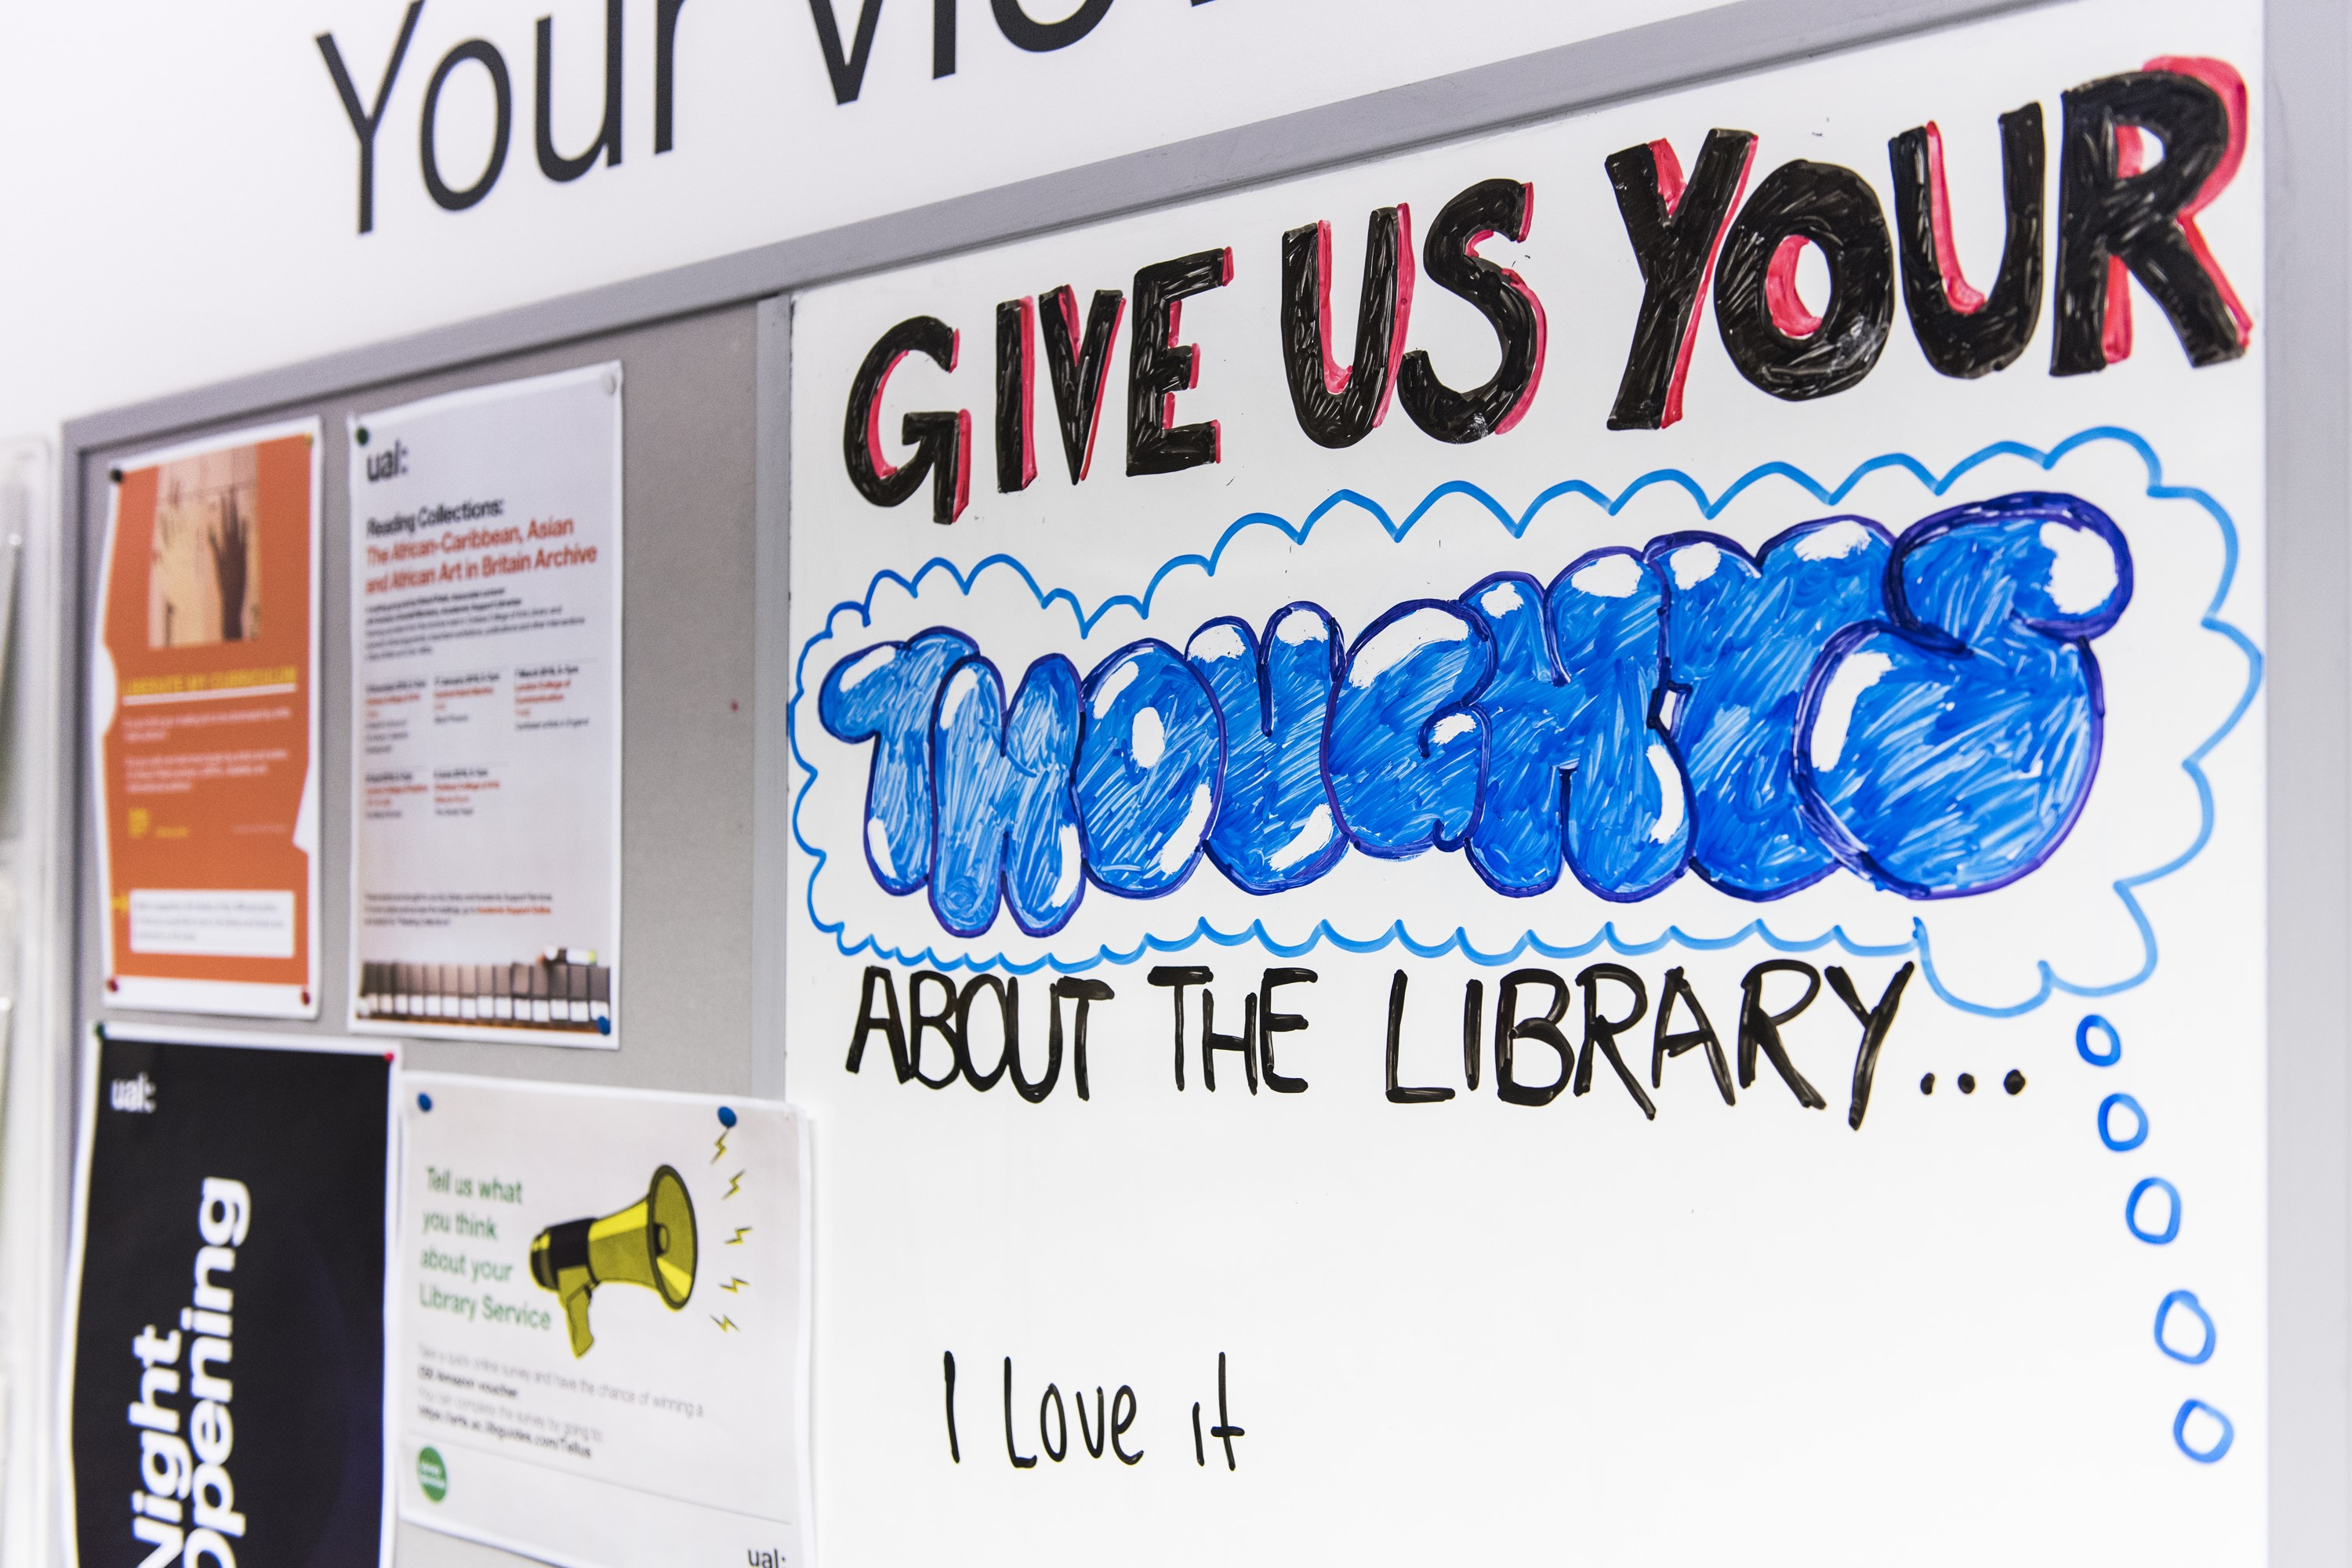 Photo of LCF library notice board focusing on whiteboard for comments